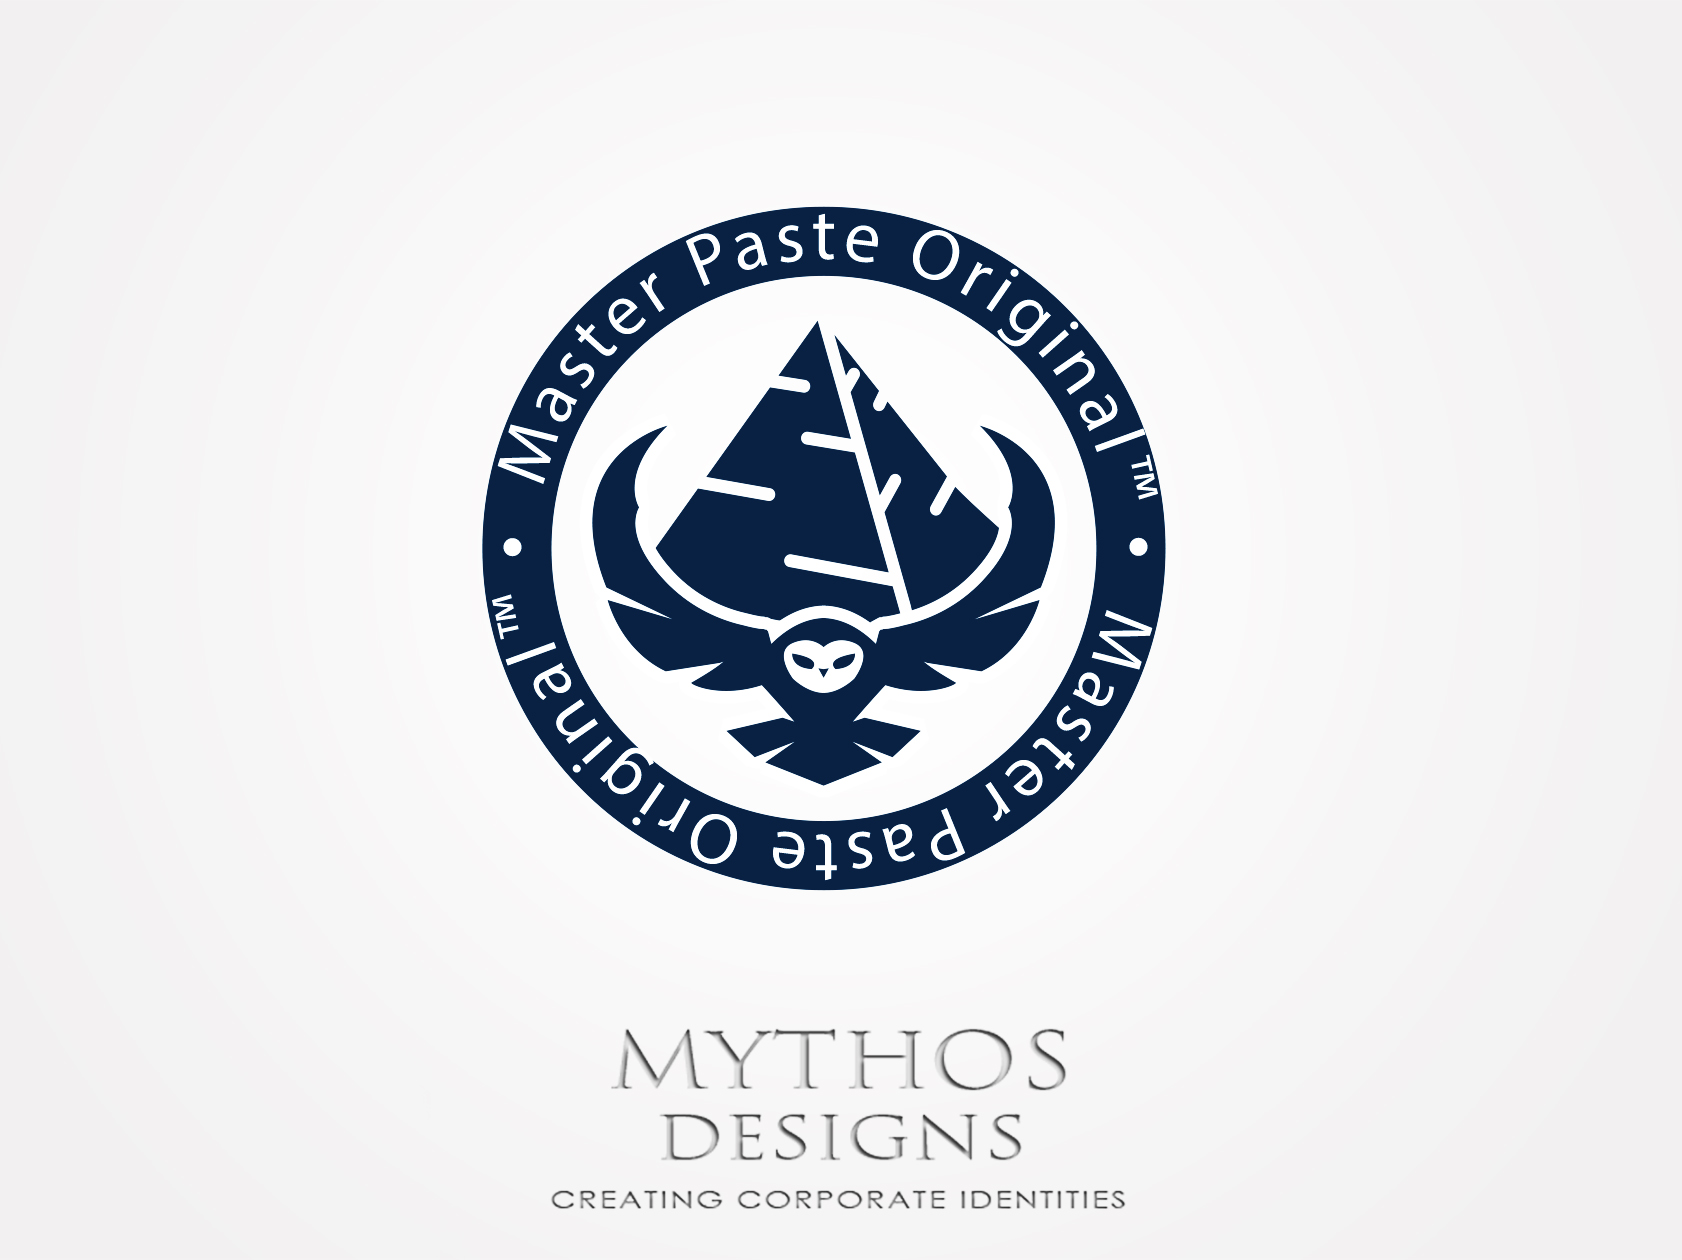 Logo Design by Mythos Designs - Entry No. 15 in the Logo Design Contest Unique Logo Design Wanted for Master Paste Original™.